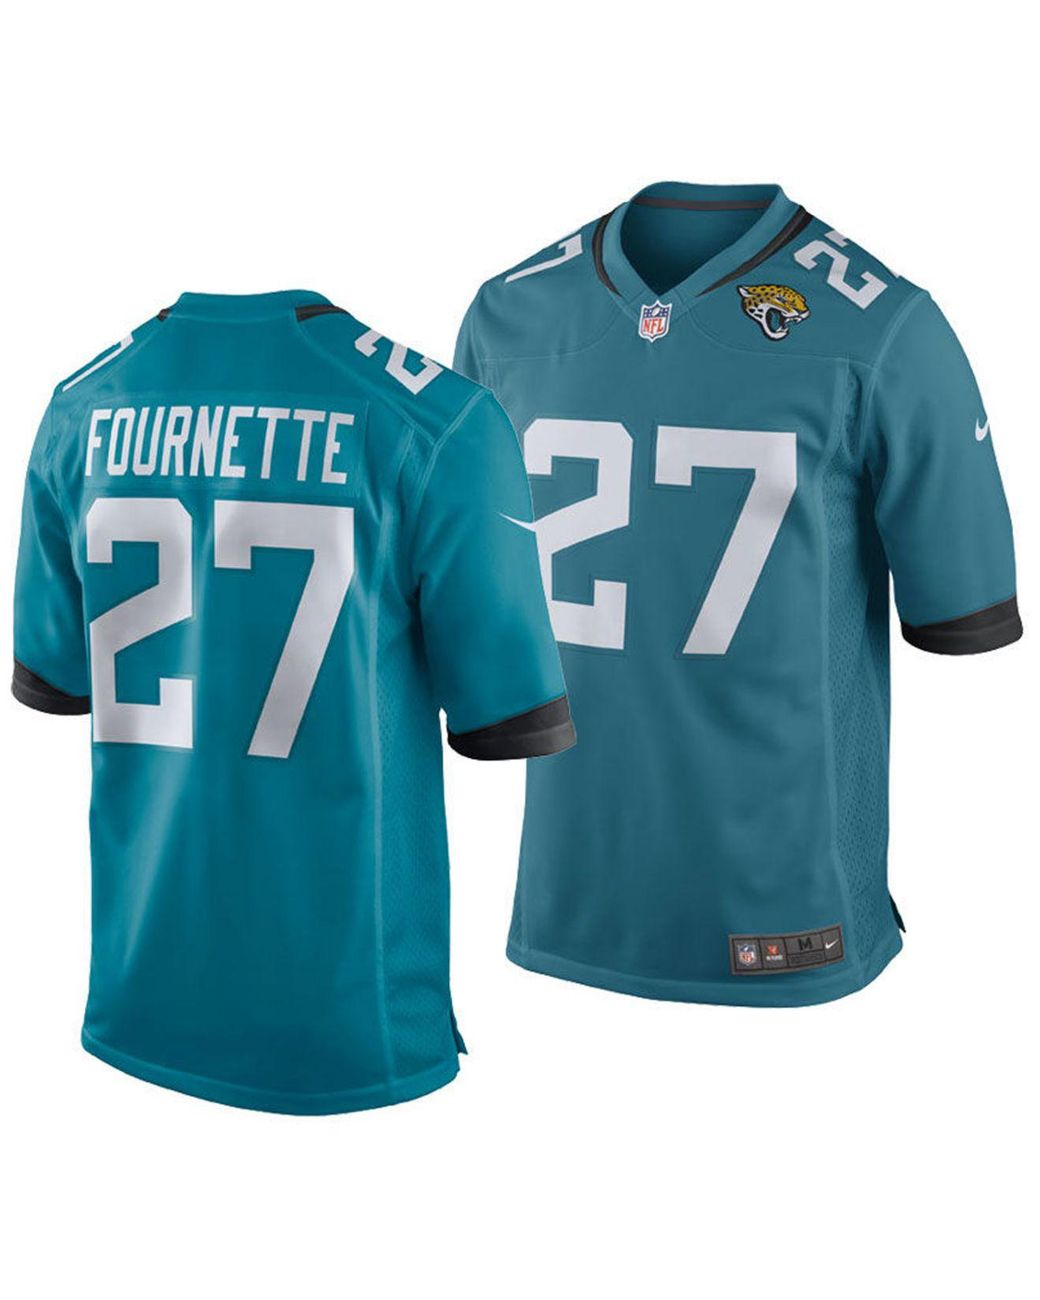 reputable site cd771 3c2a1 Men's Blue Leonard Fournette Jacksonville Jaguars Game Jersey